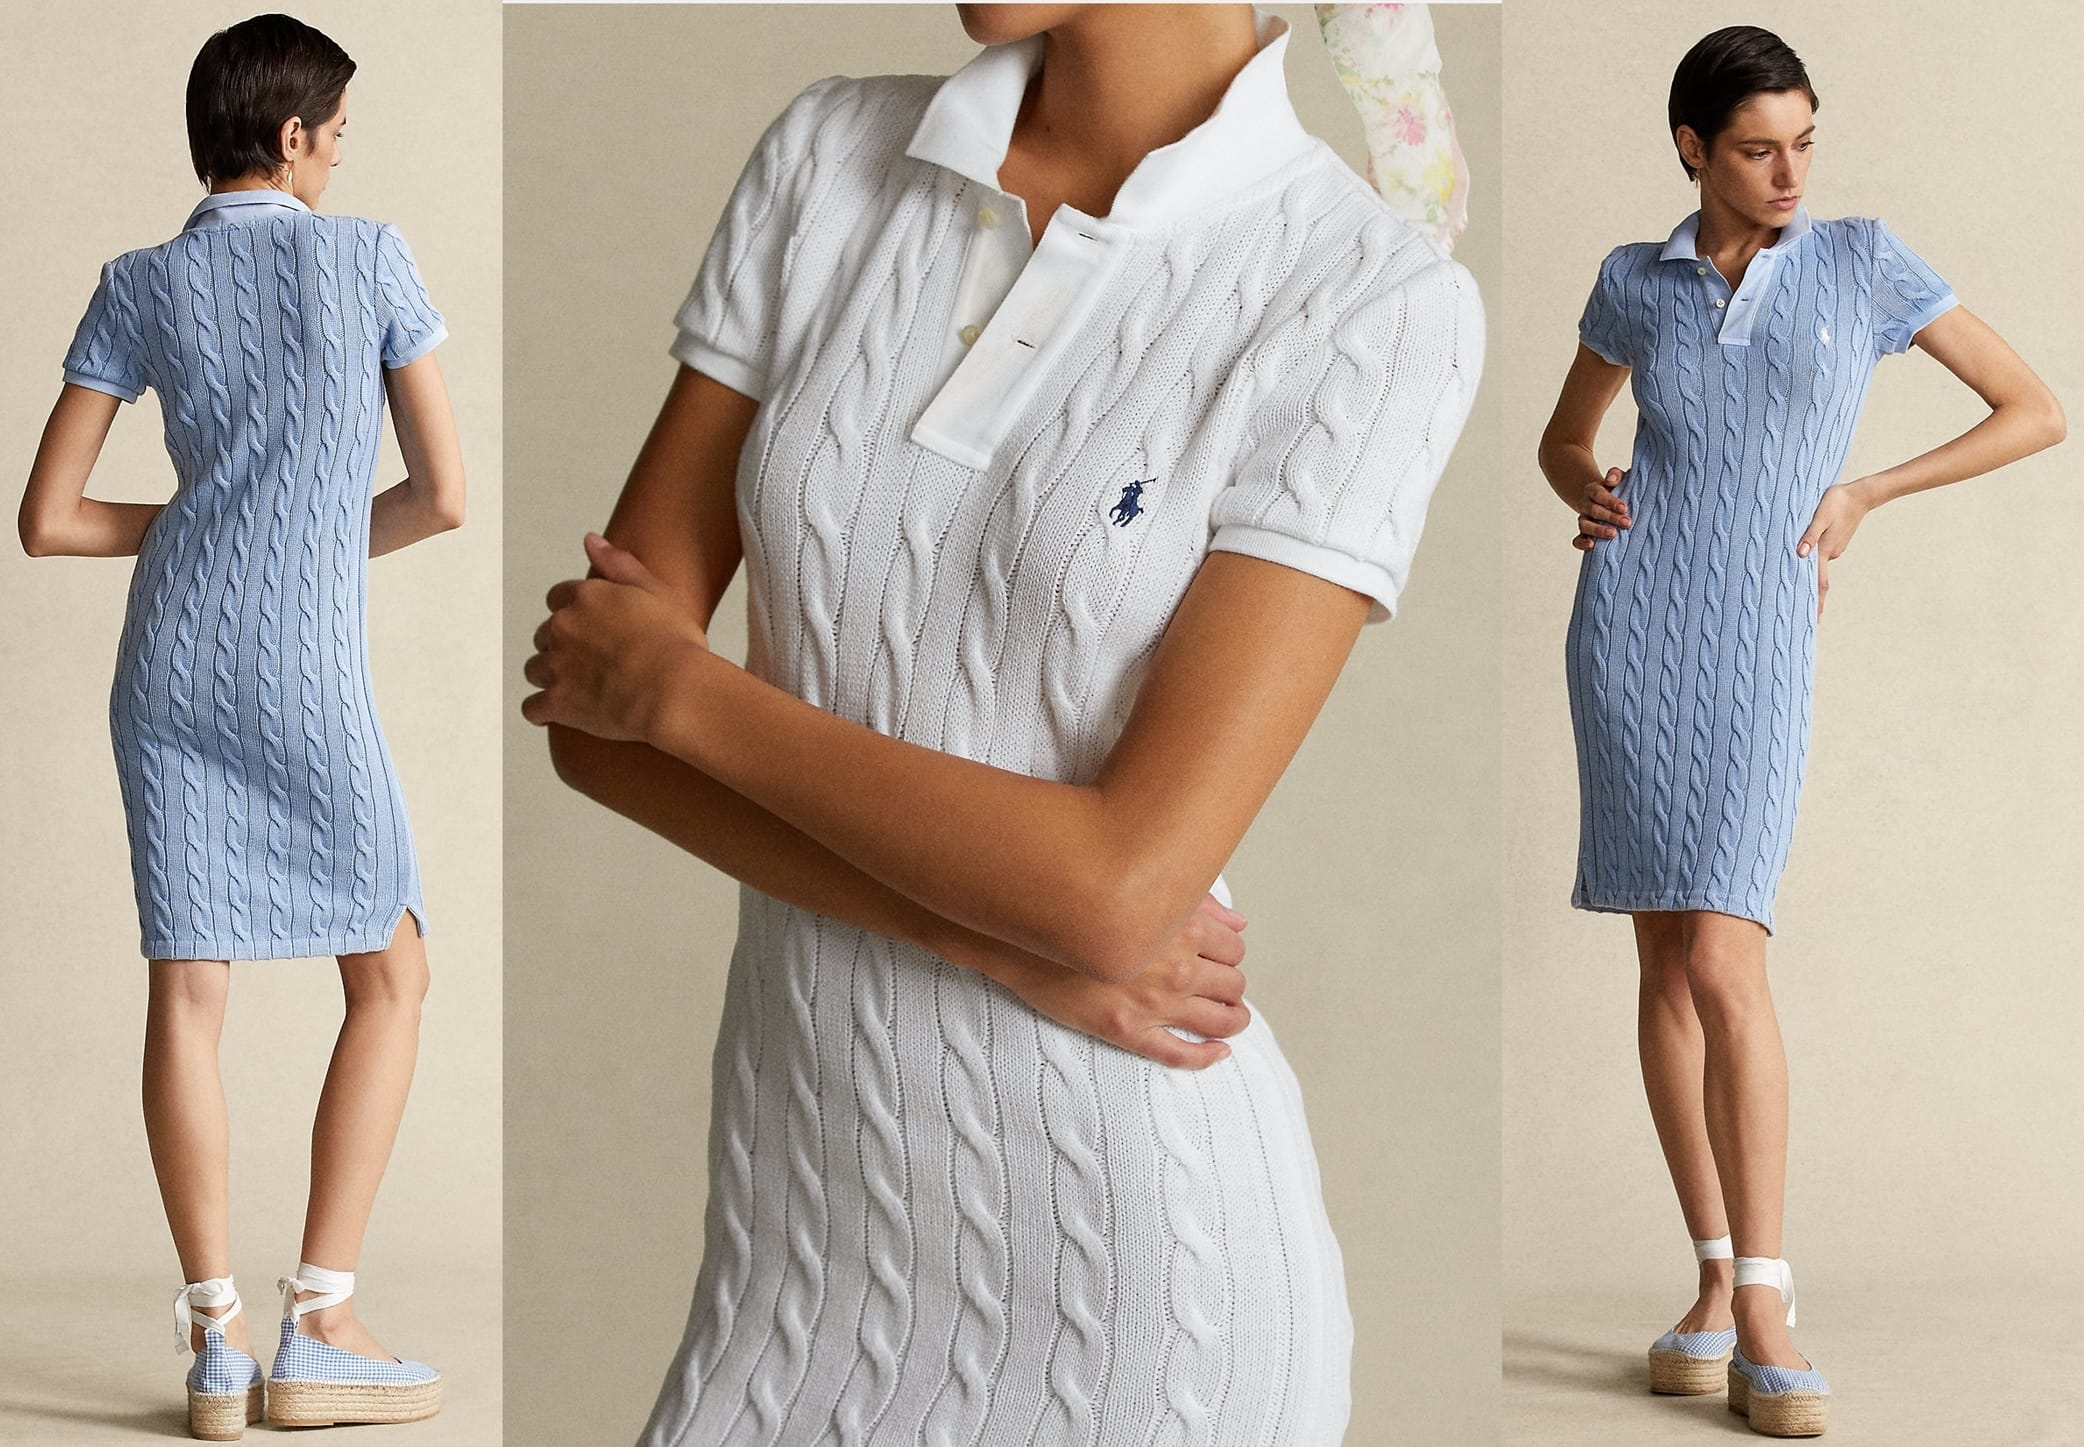 This versatile dress is crafted from soft combed cotton with our signature cable-knit construction